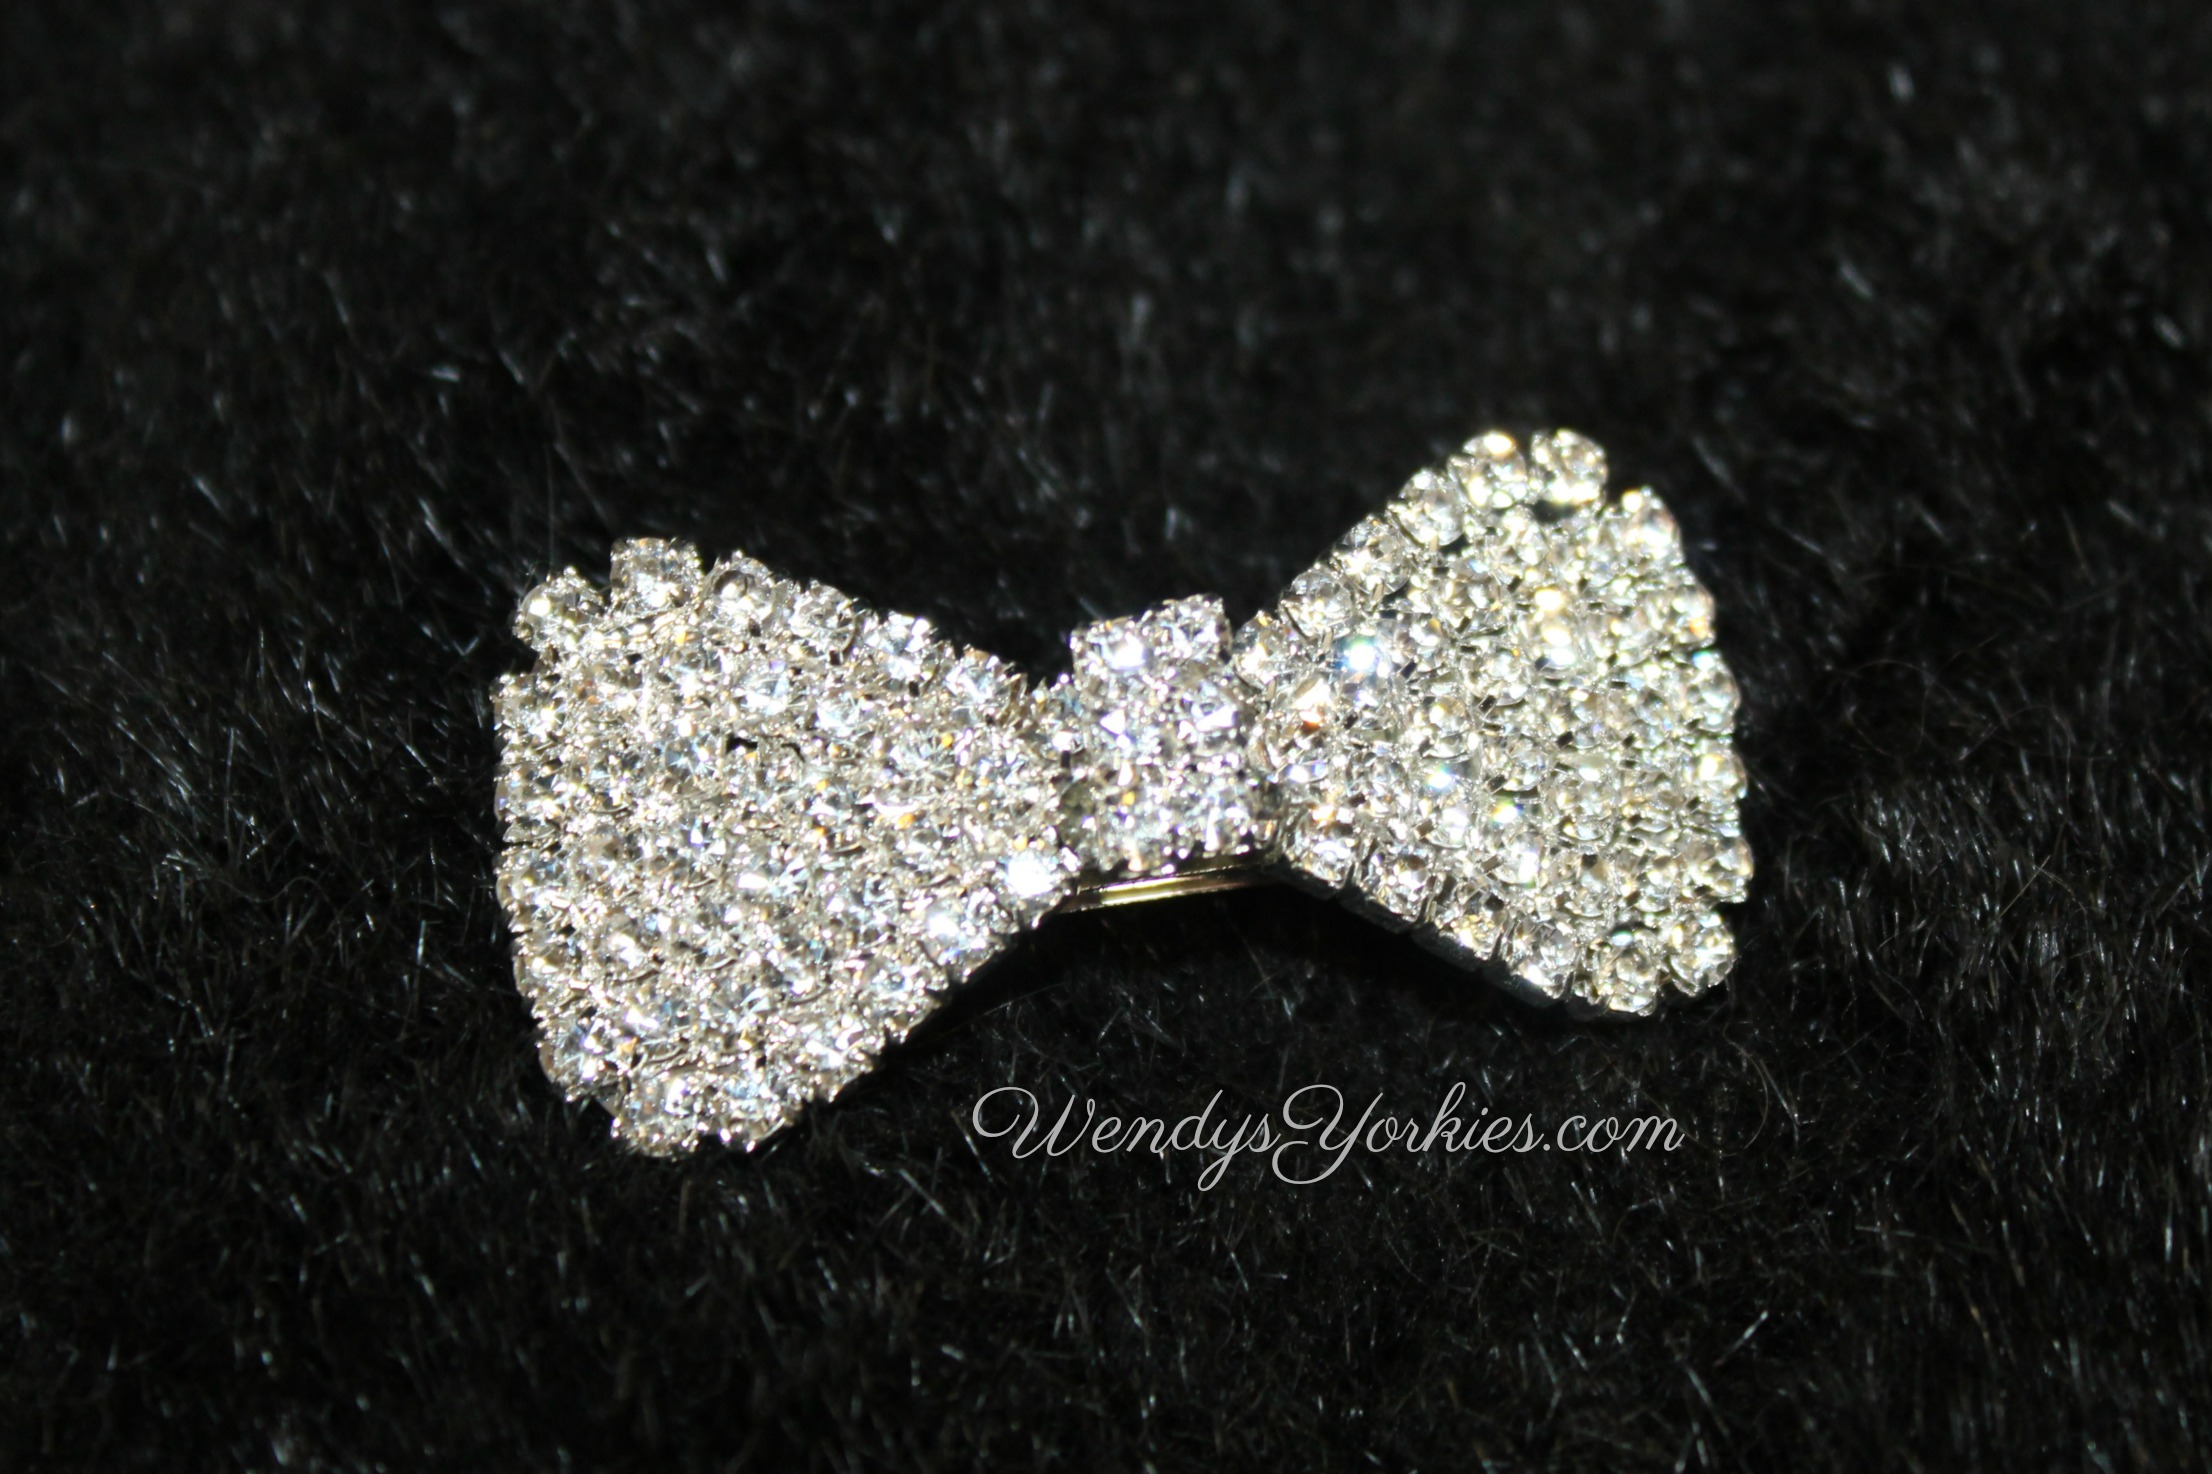 Silver Bling Bow, WendysYorkies.com